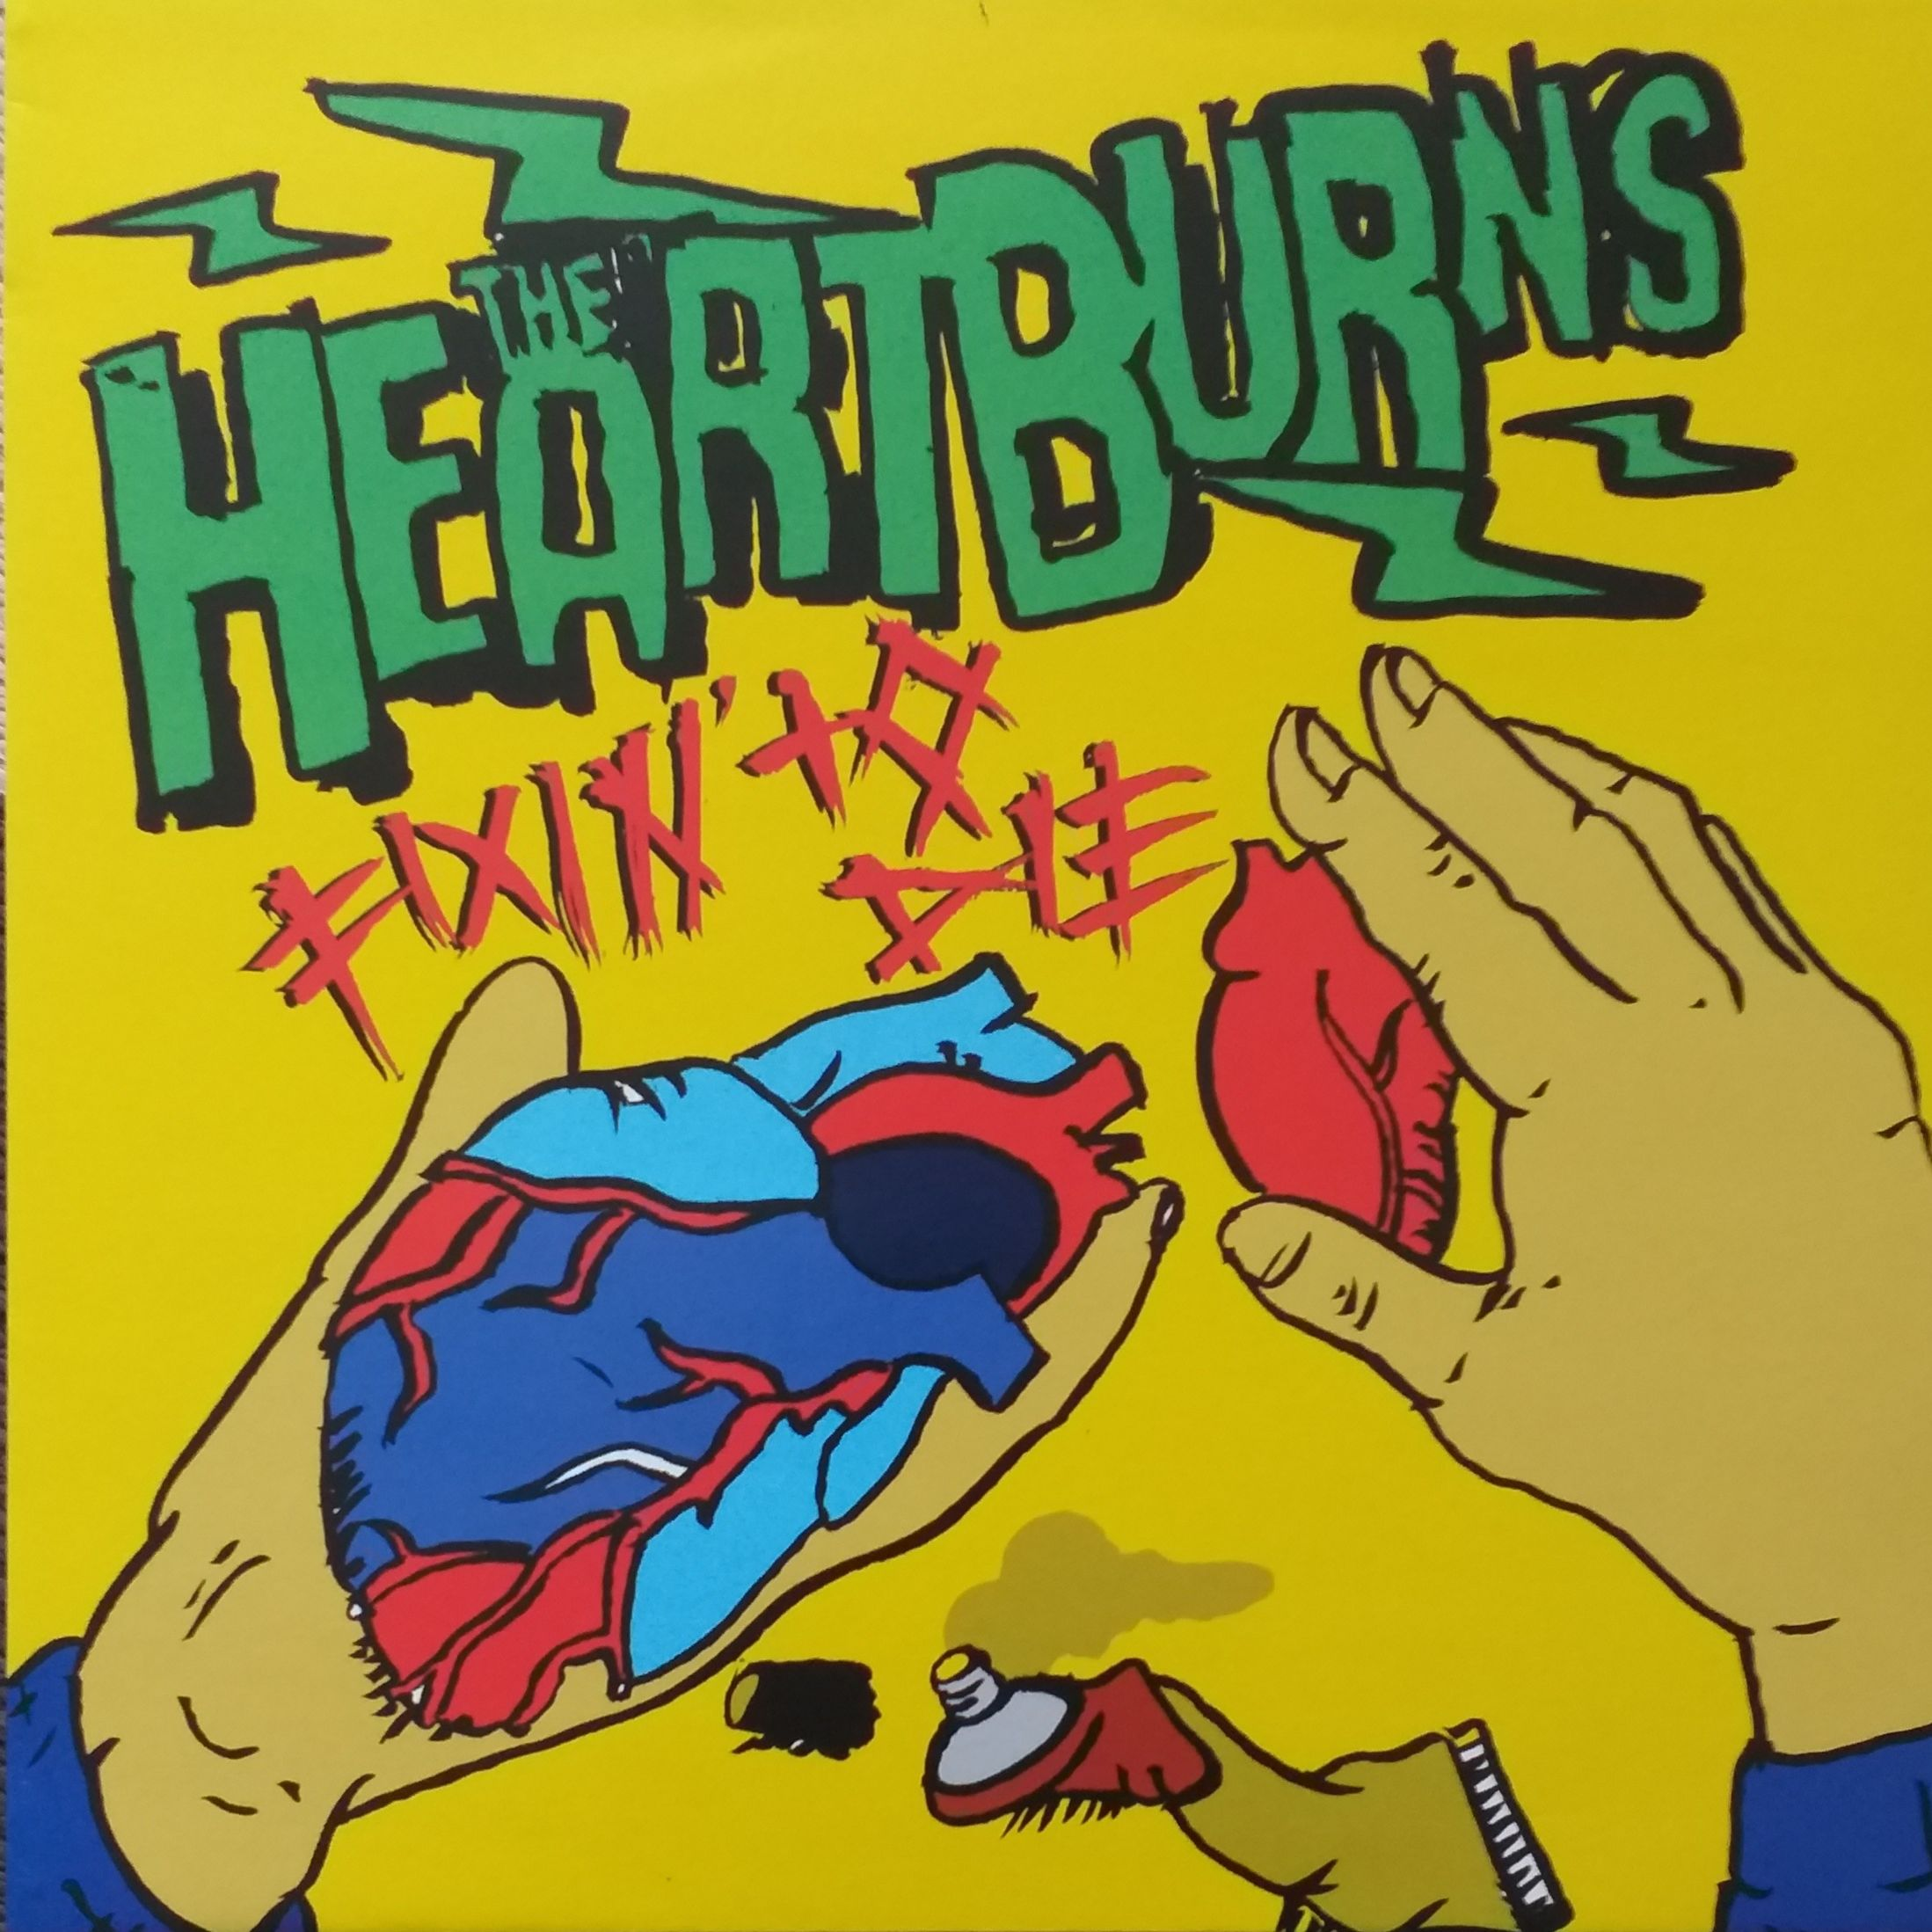 The Heartburns  Fixin' to die LP undefined